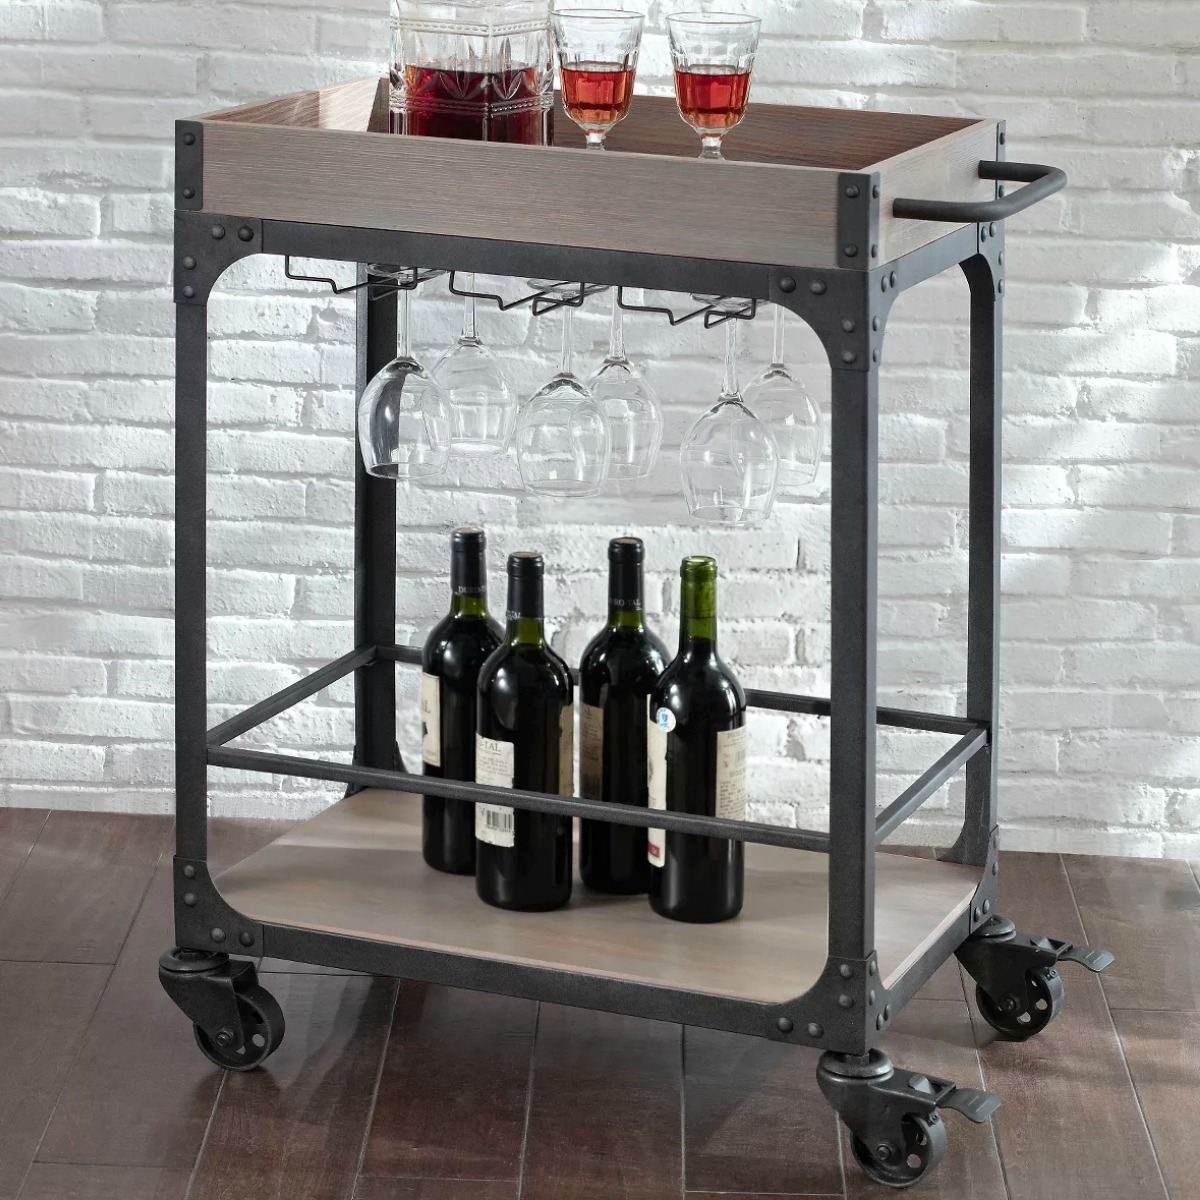 Wood and metal bar card with wine bottles and glasses